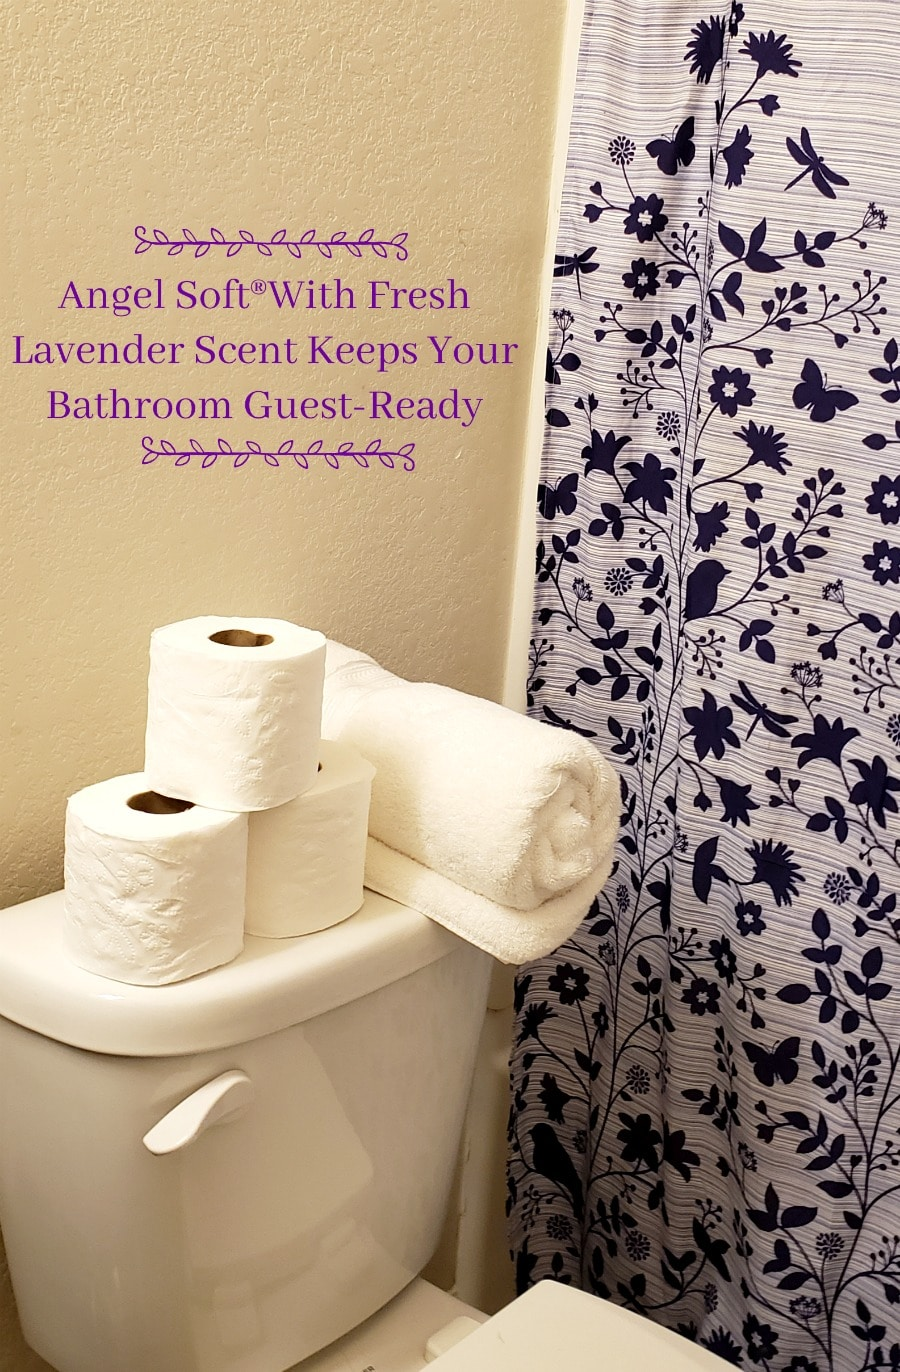 Angel Soft®With Fresh Lavender Scent Keeps Your Bathroom Guest-Ready